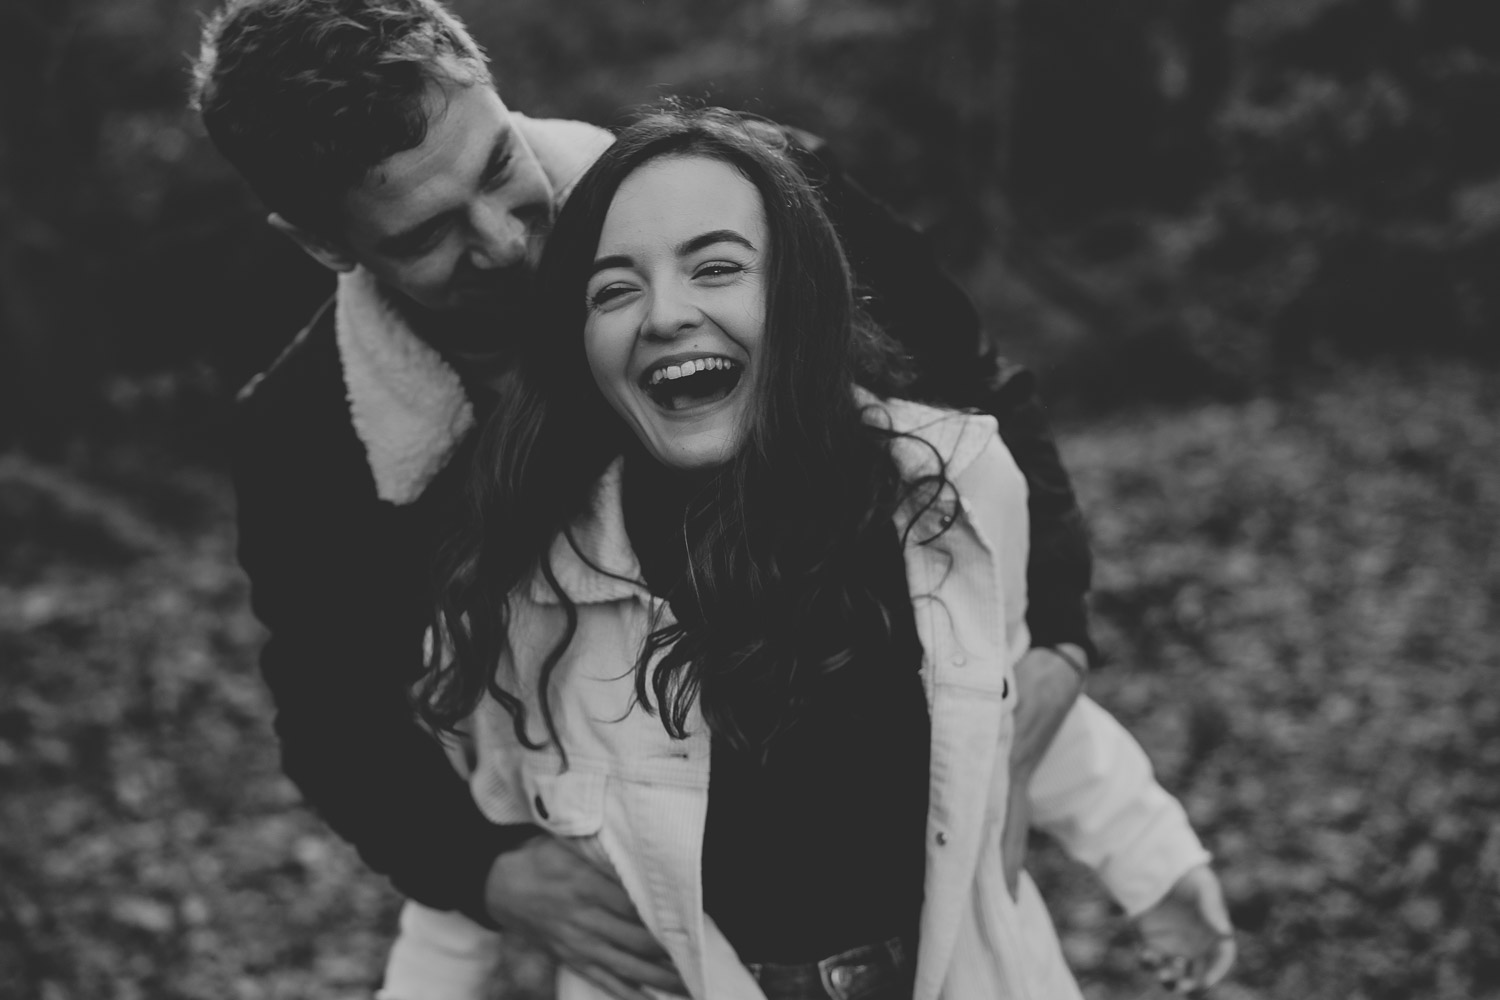 sheringham country park engagement session by georgia rachael